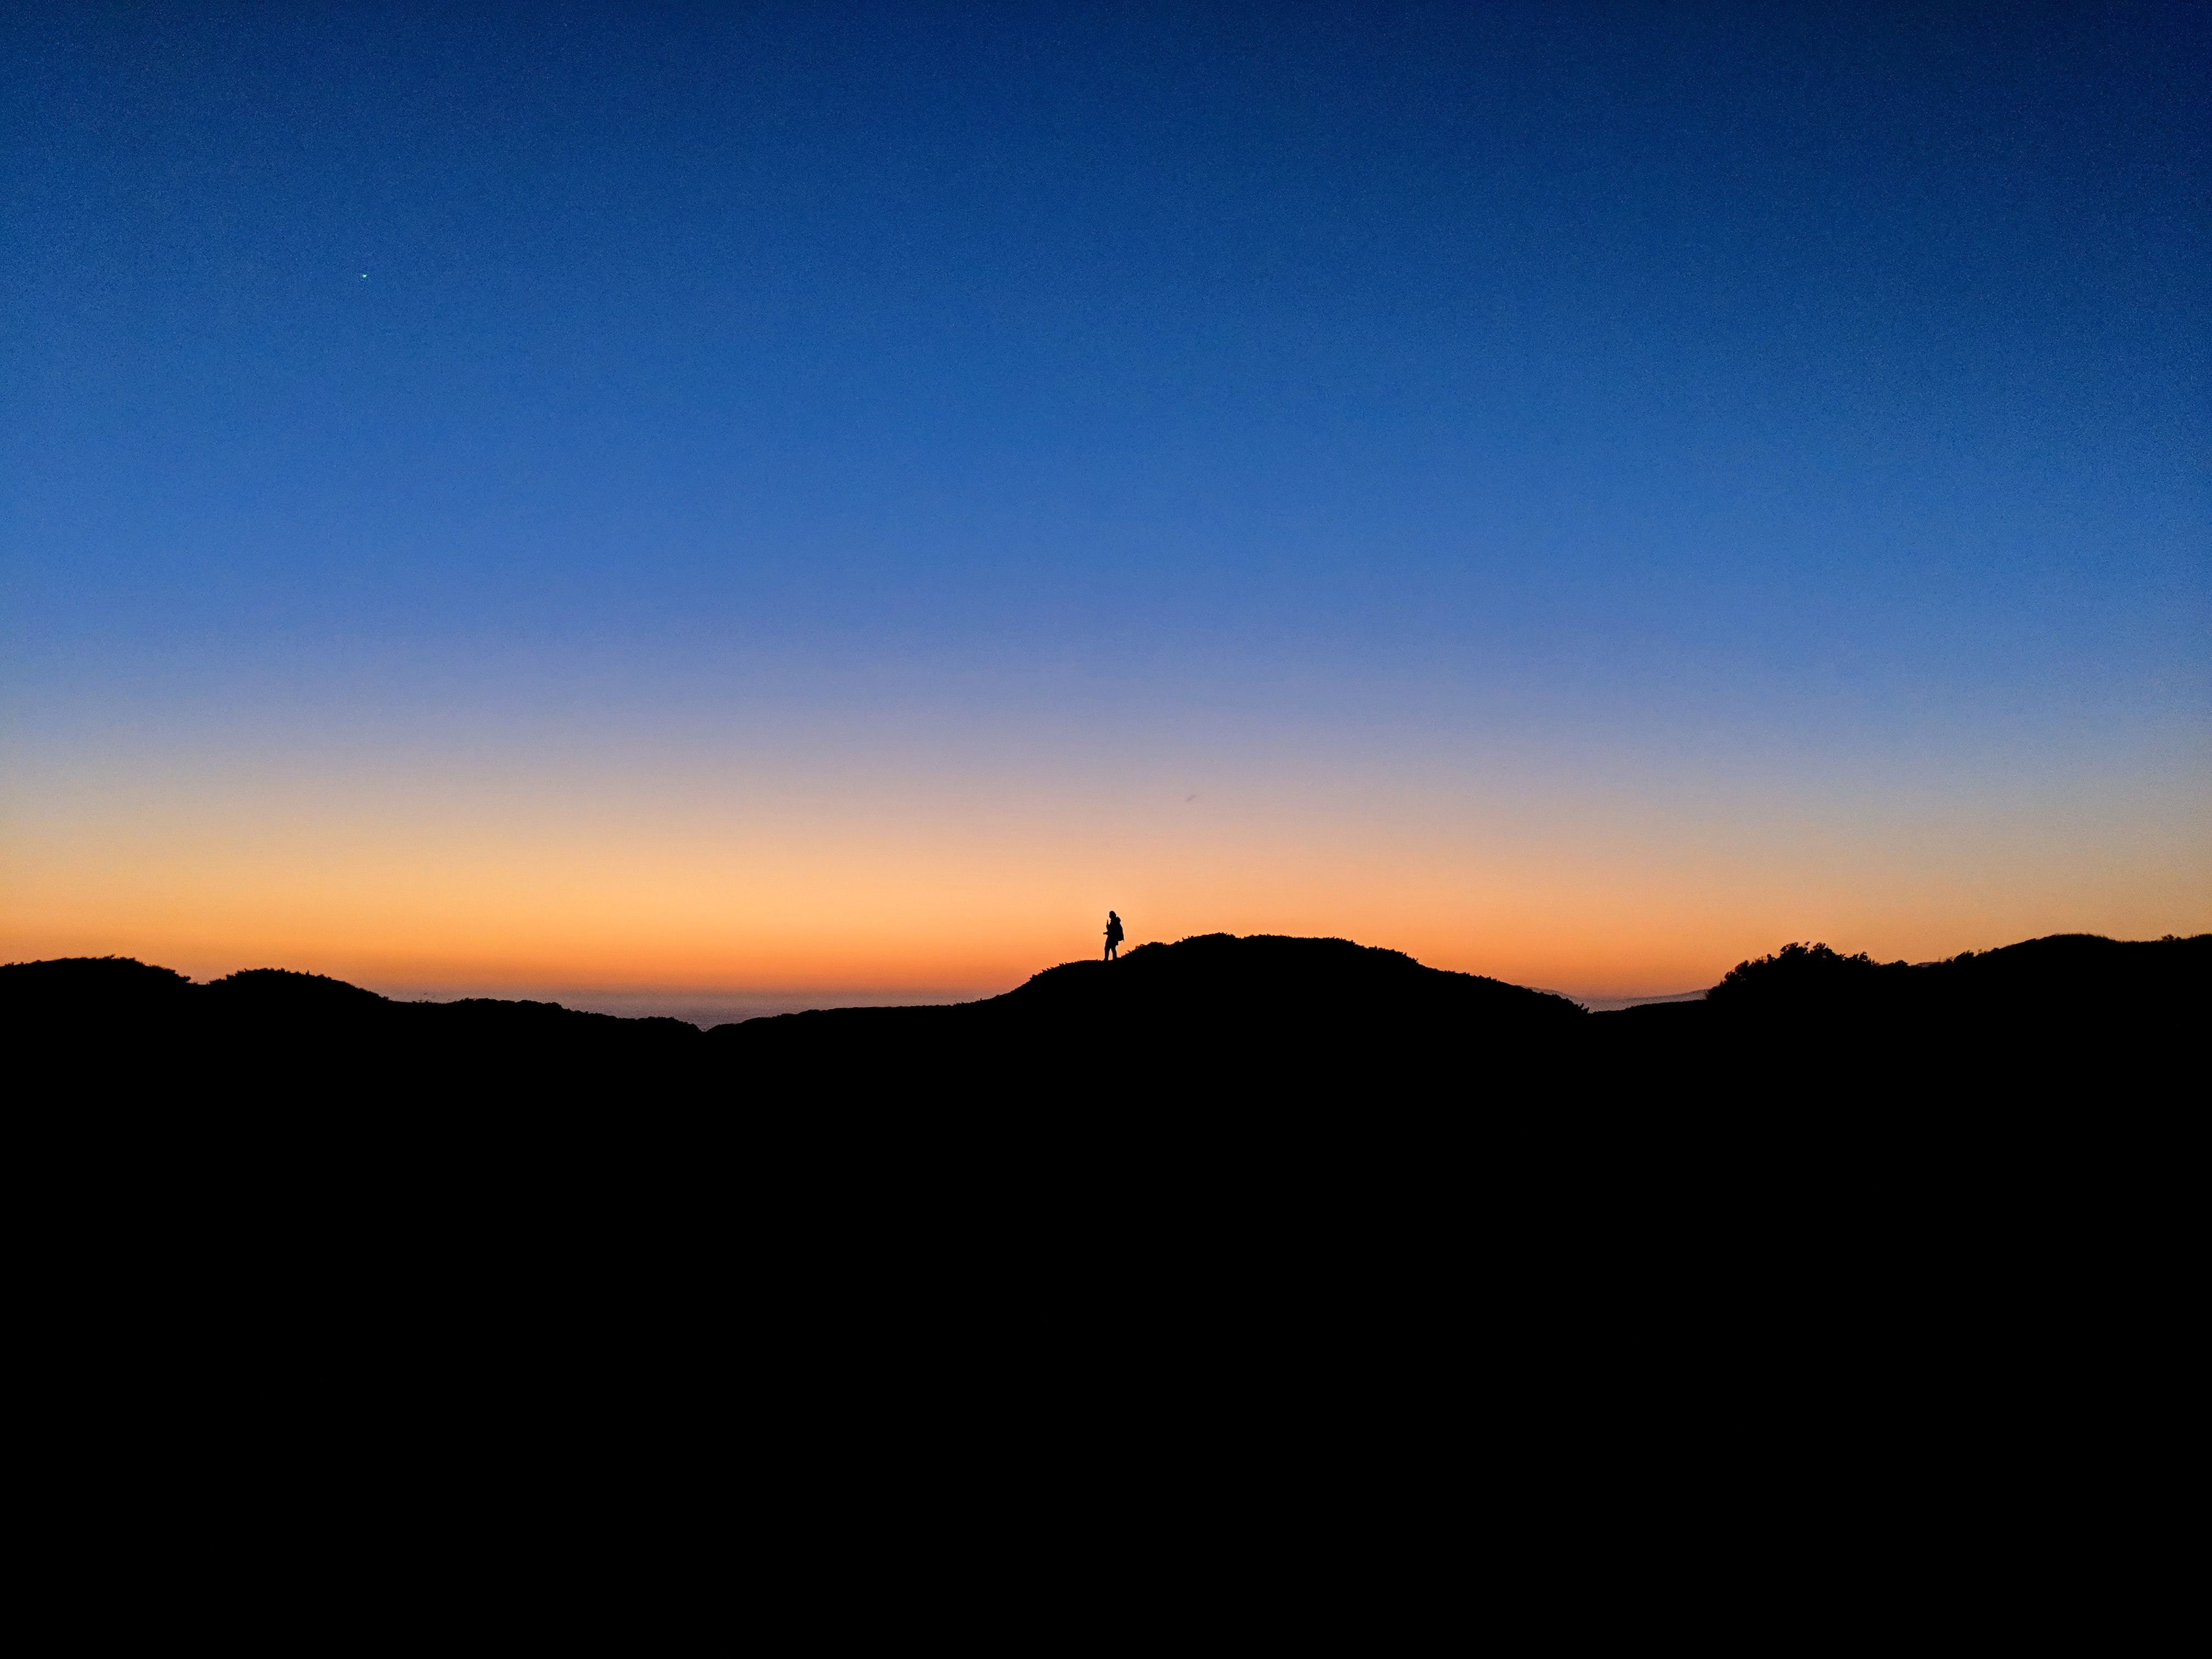 silhouette of person on mountain under clear blue sky